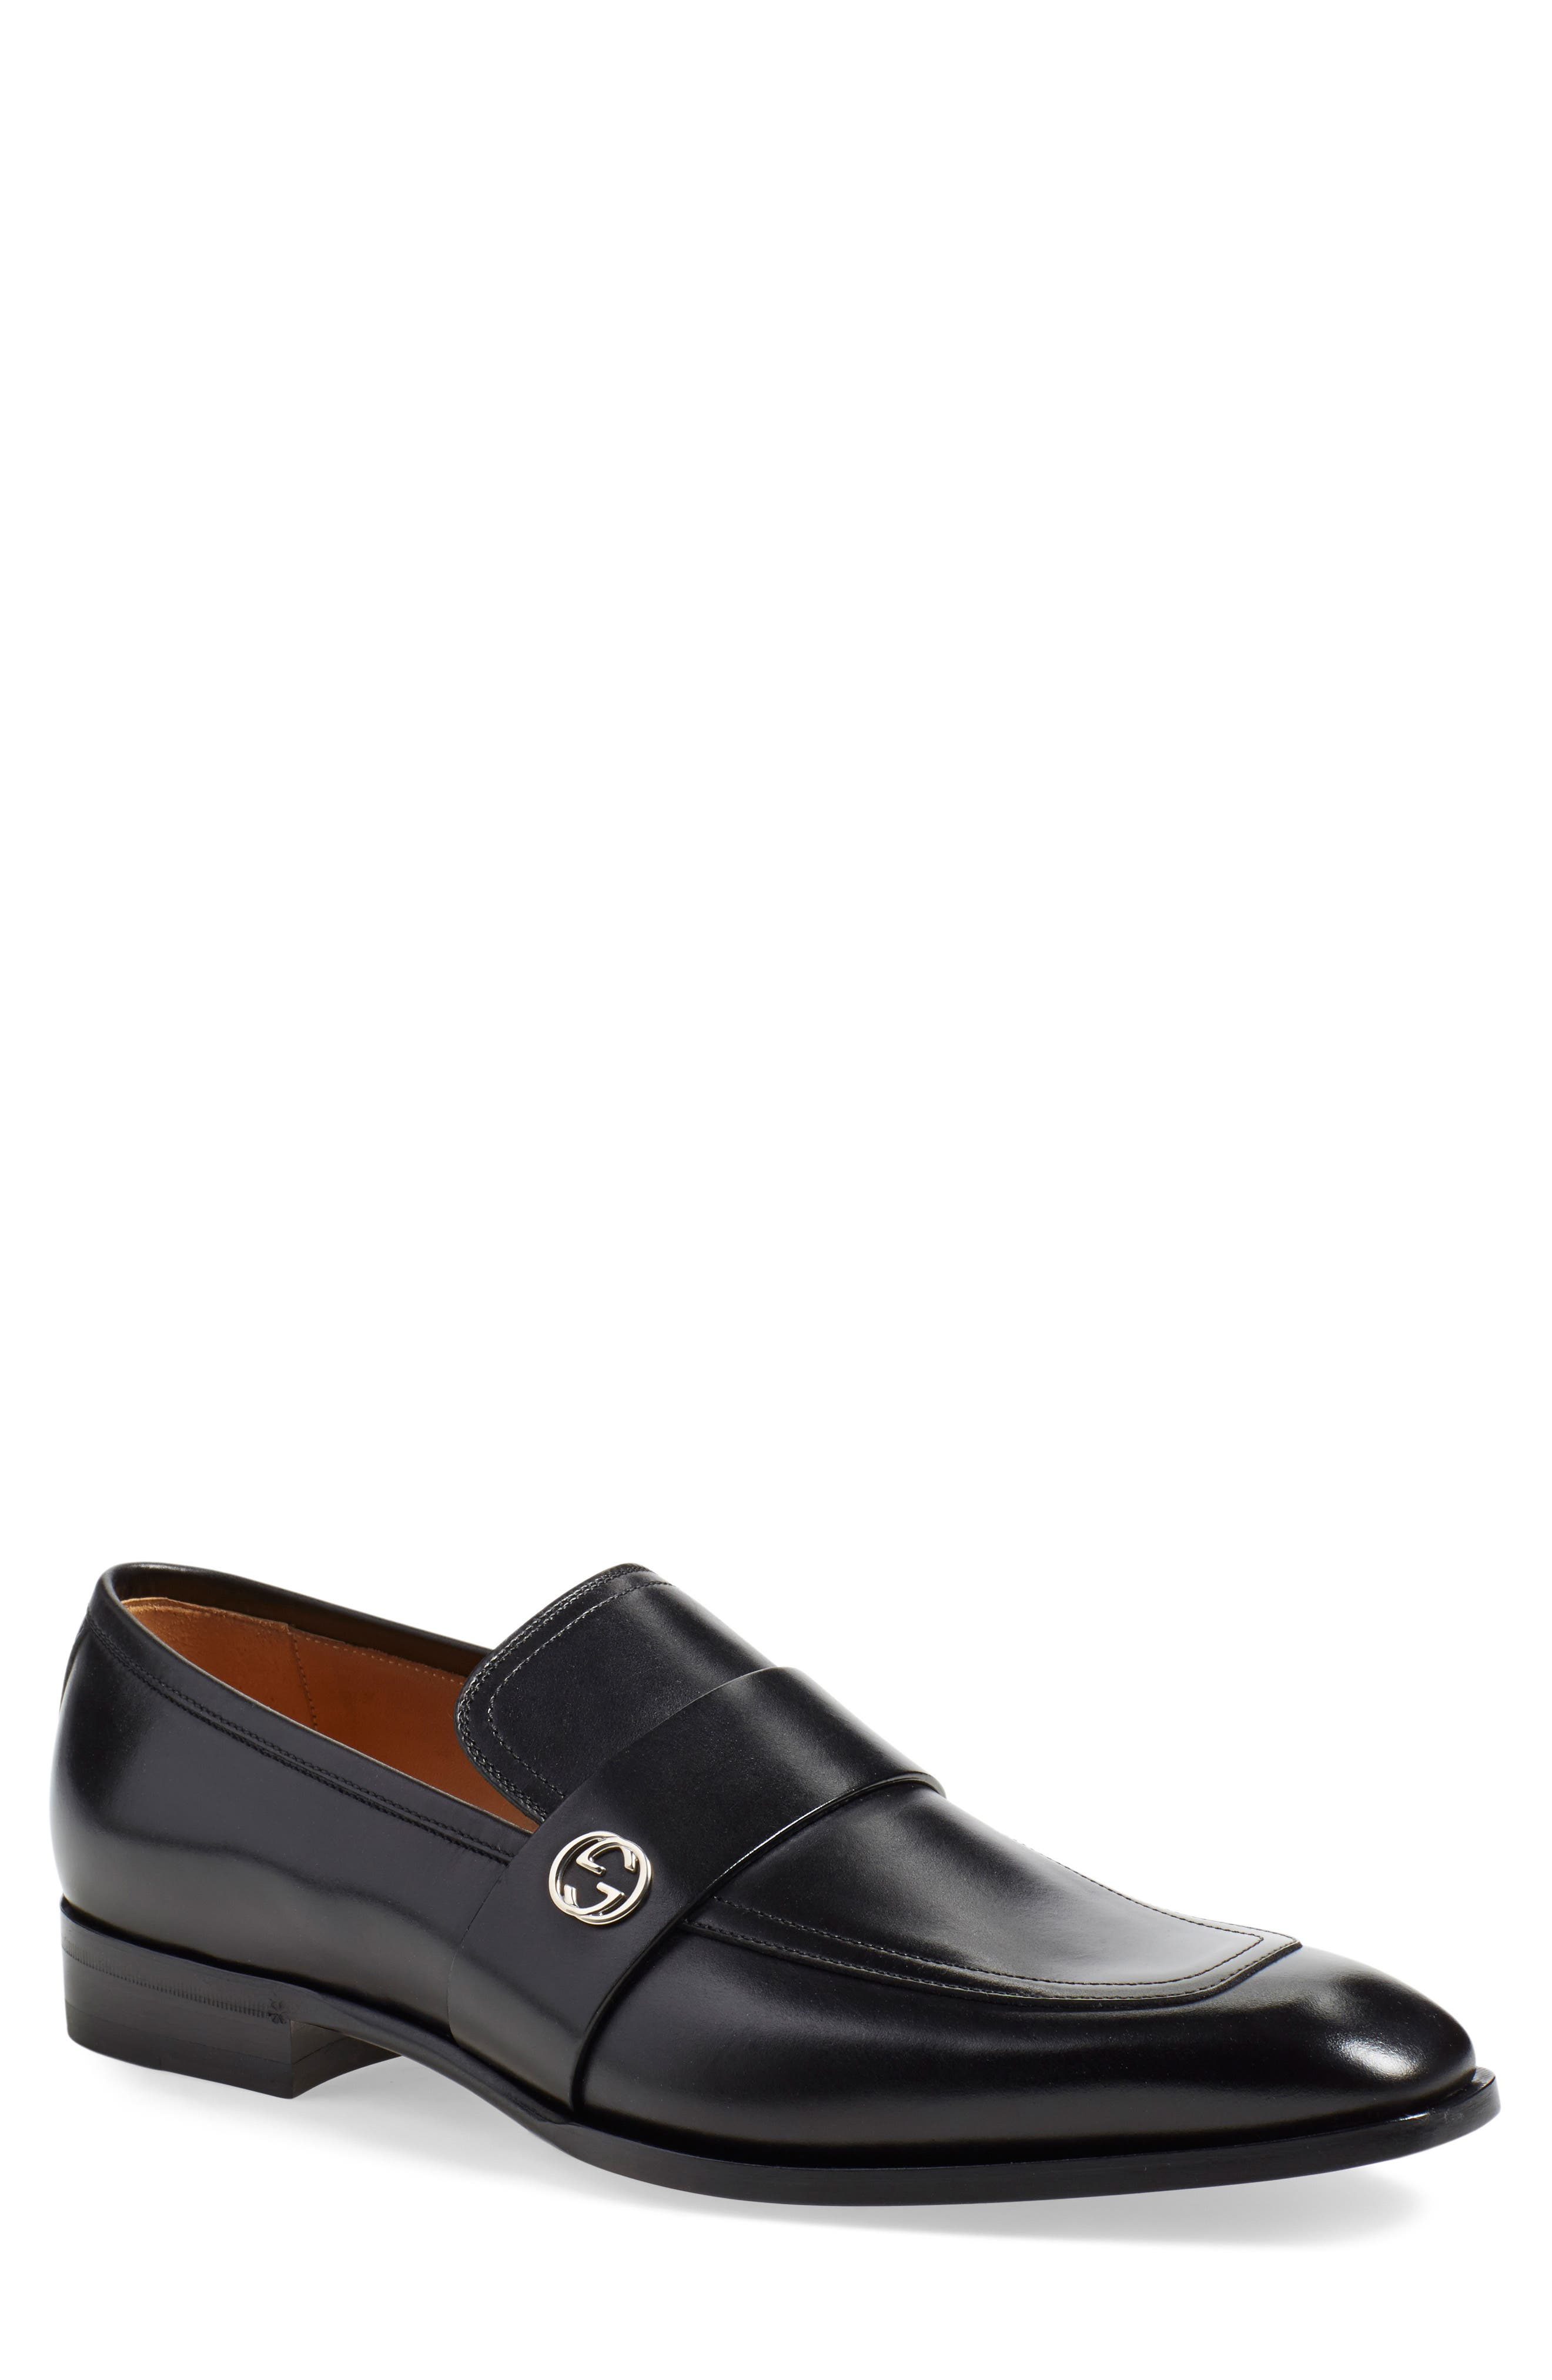 'Broadwick' Loafer,                             Alternate thumbnail 2, color,                             001